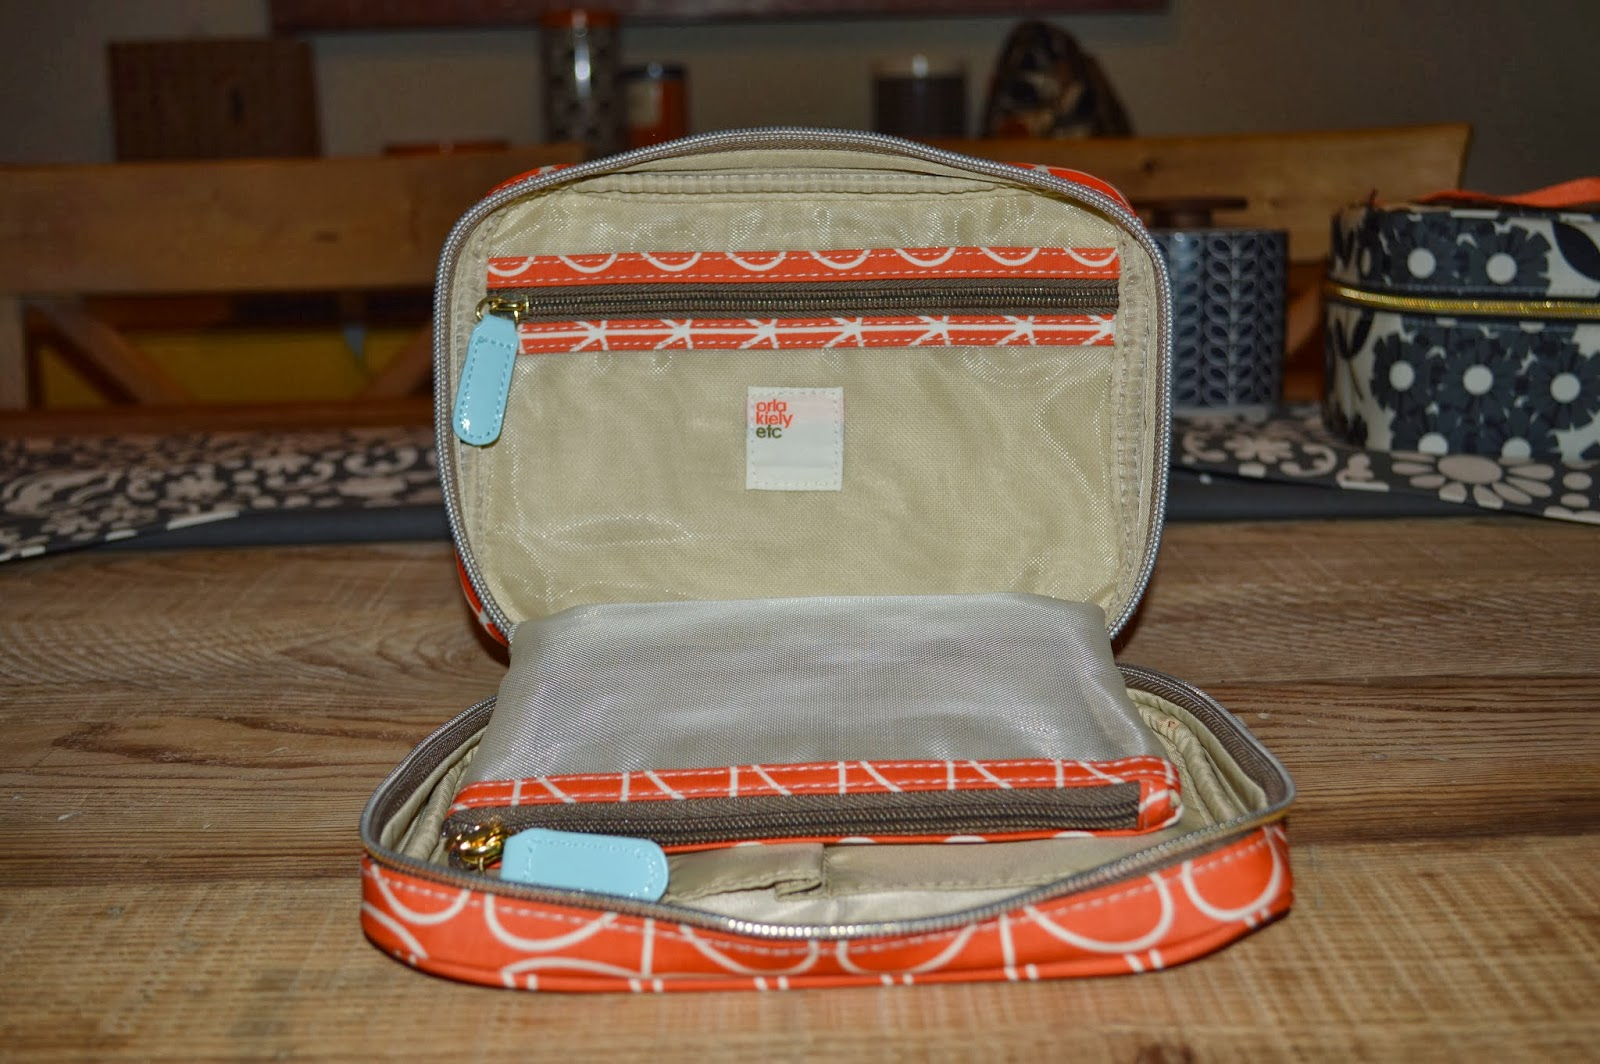 So This Makeup Bag Definitely Has All The Little Pockets I Need To Keep Everything Organized Orla Kiely